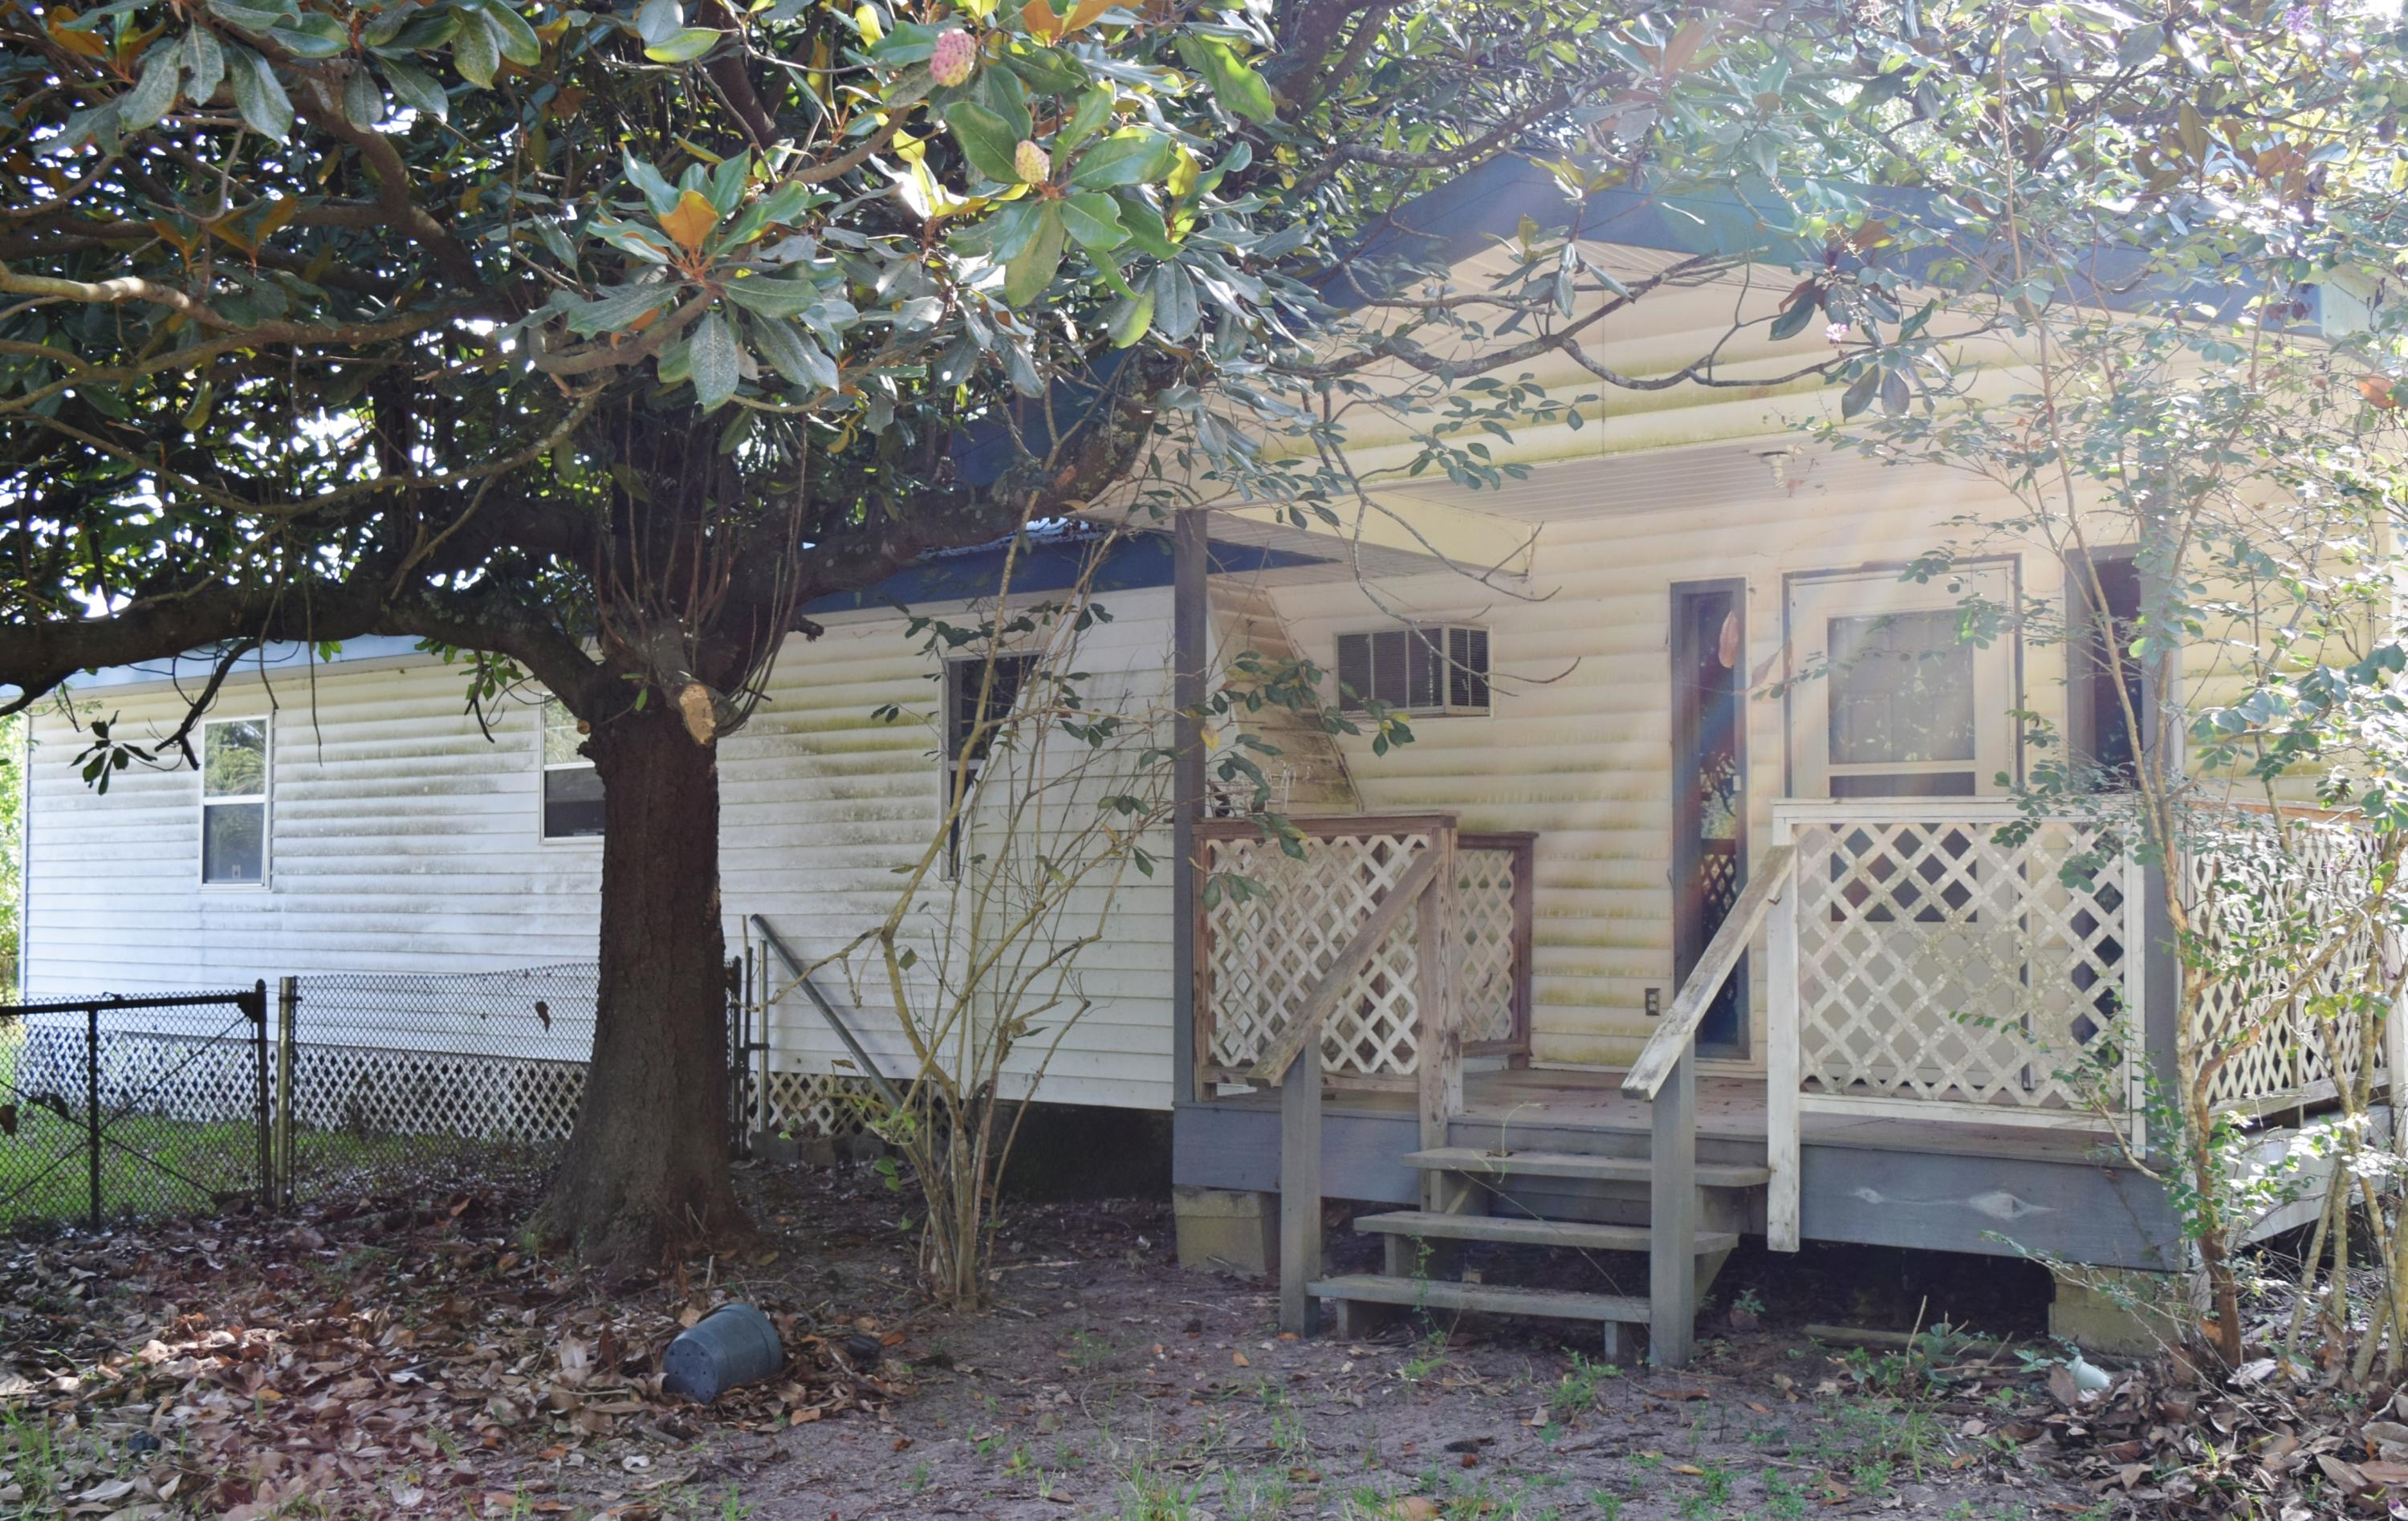 Simpson home for sale, 1969 Forest Dr, Simpson LA - $100,000